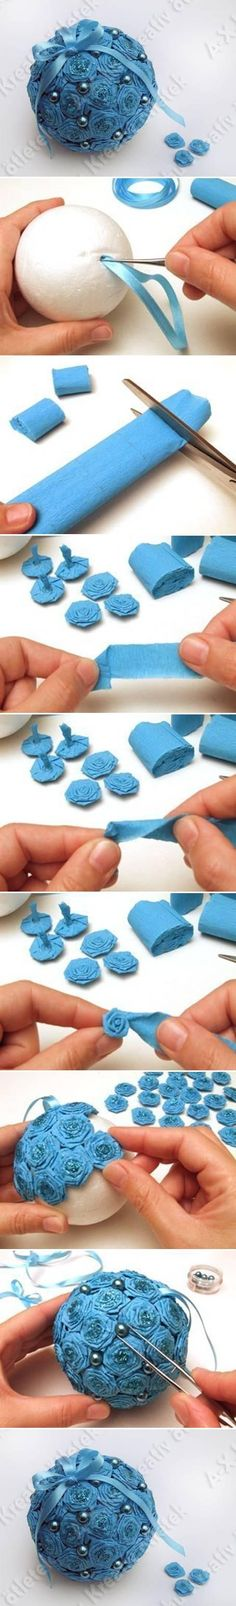 DIY Tutorial: DIY crepe paper flowers / DIY Crepe Paper Flower Ball - Bead&Cord